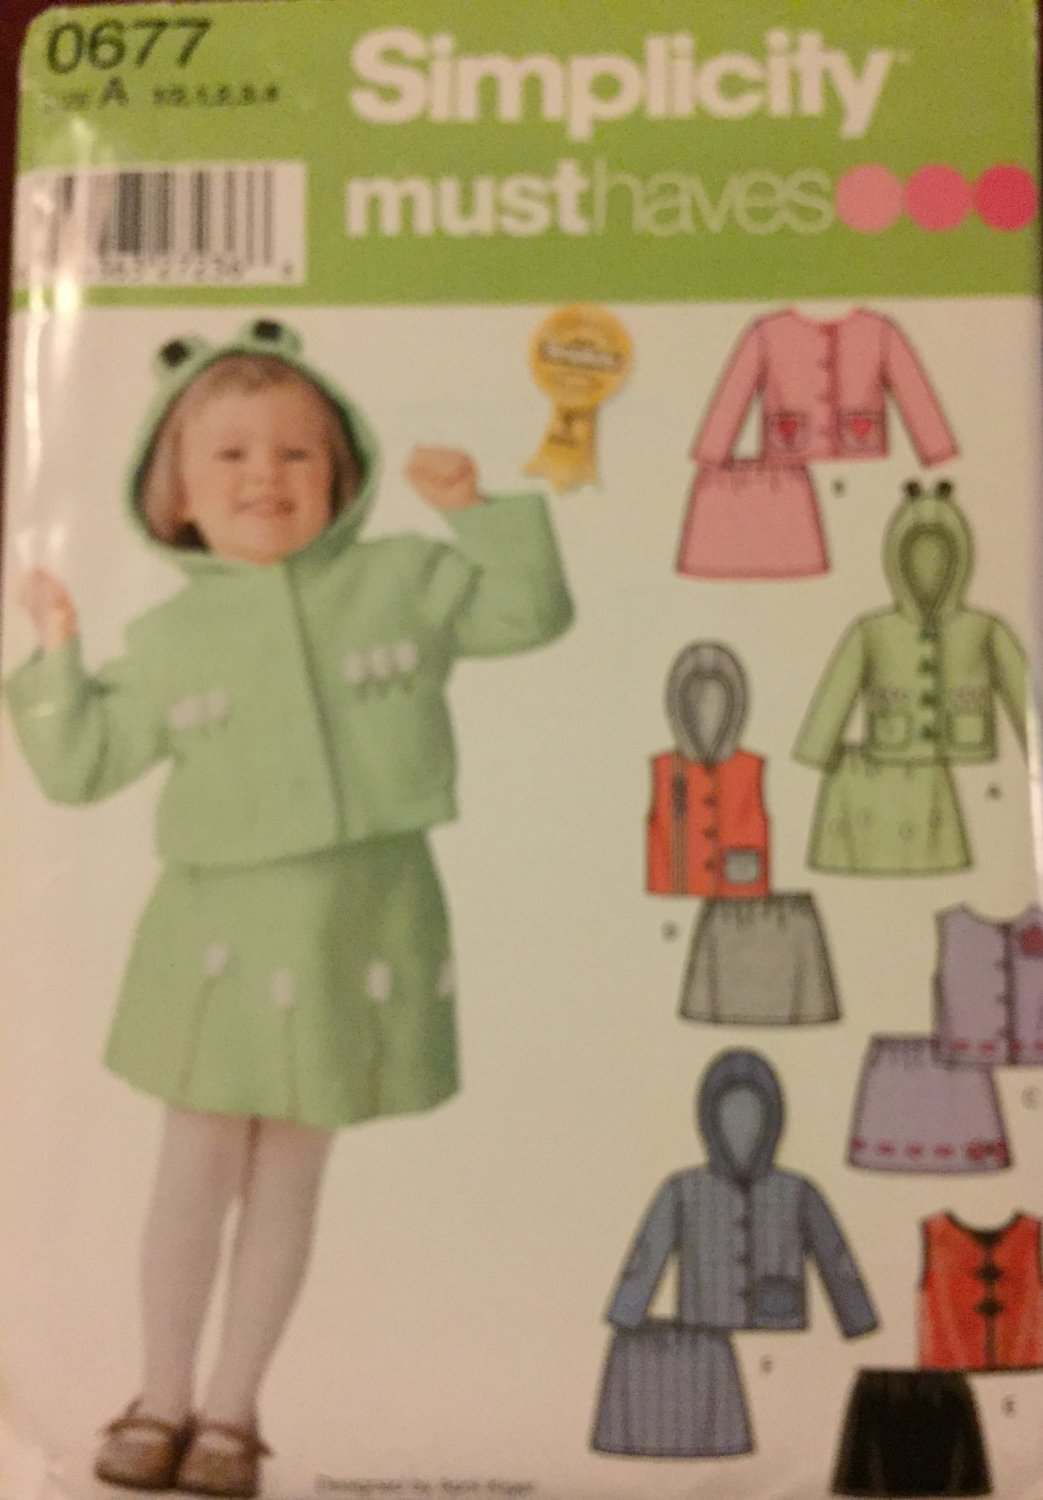 Simpliicity 0677 Must Have Sewing pattern Toddlers' Jacket or vest and skirt sizes 1/2, 1, 2, 3. 4